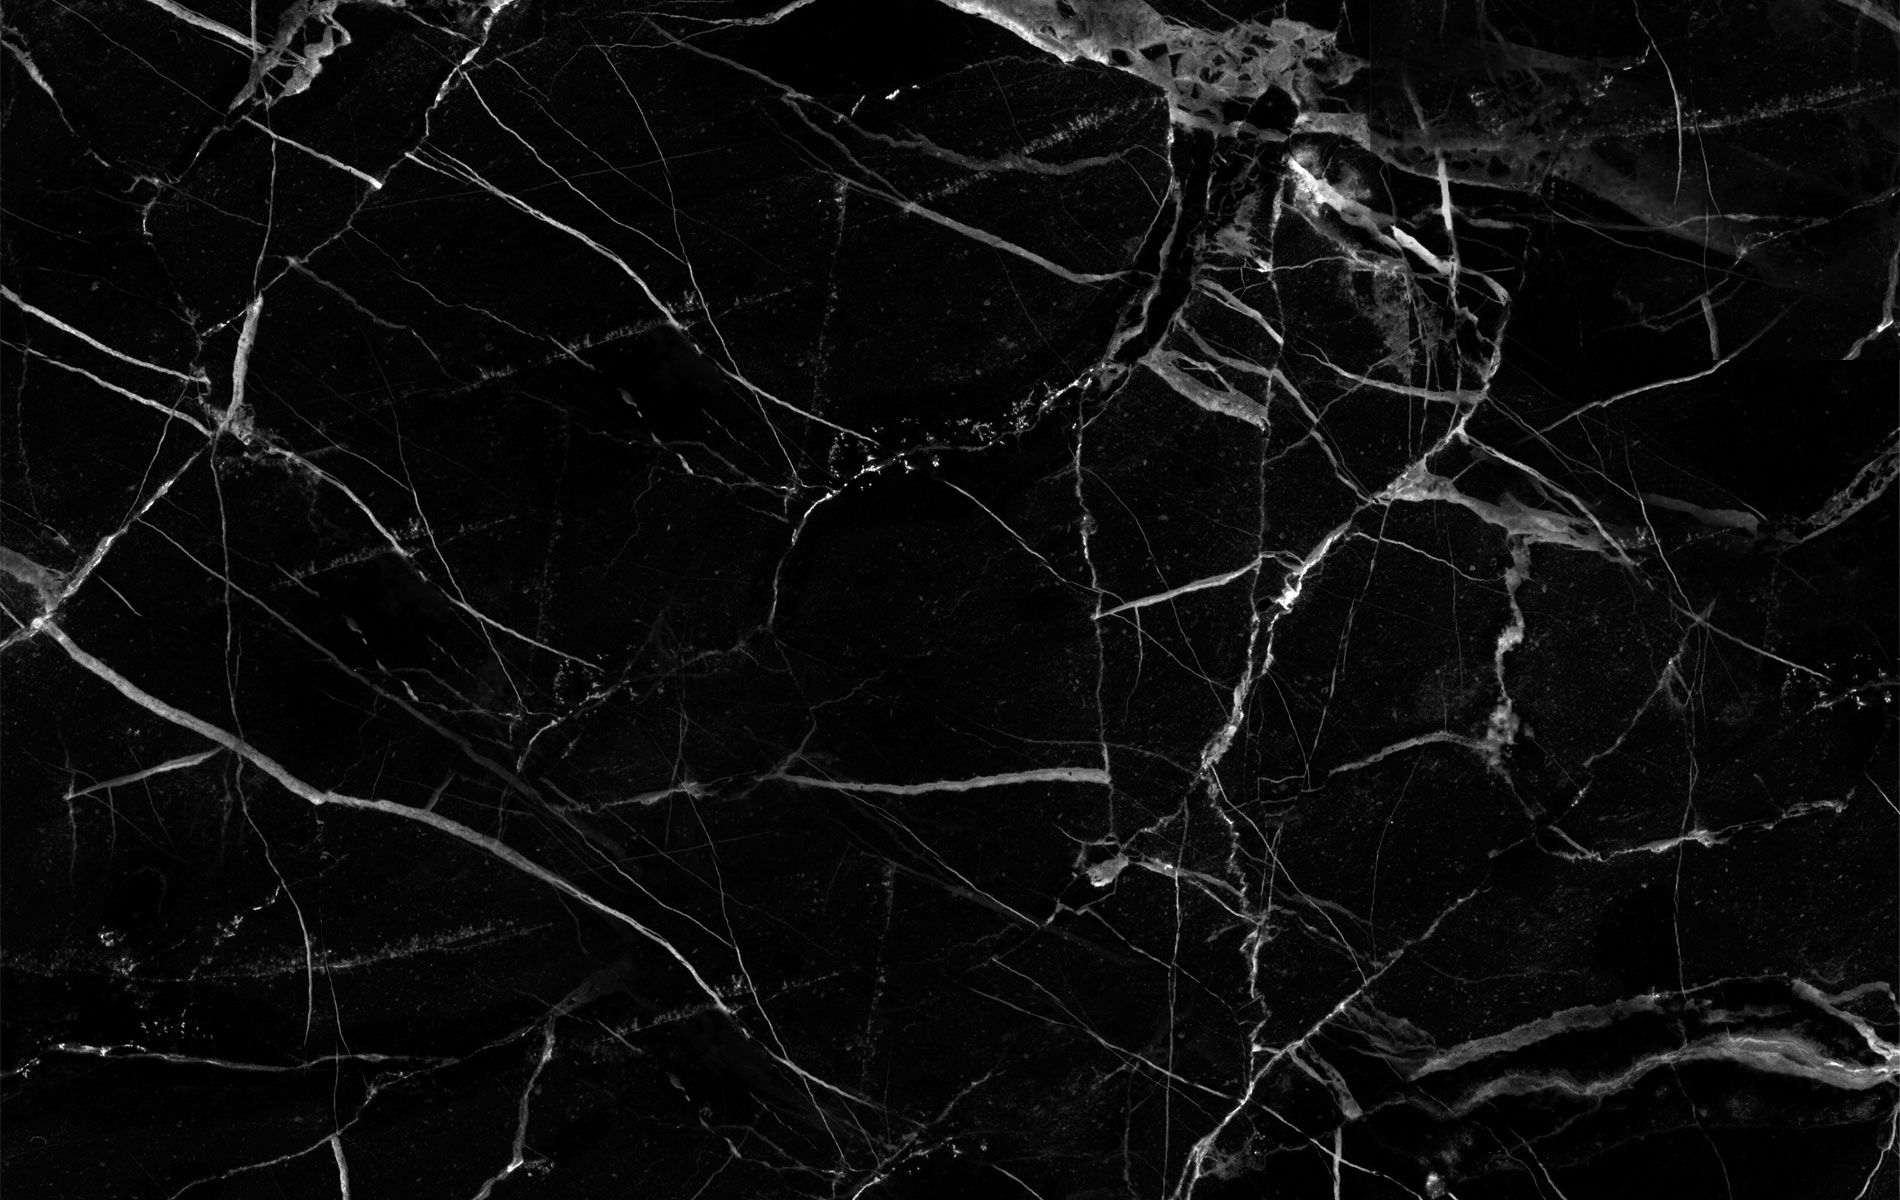 Marble hd wallpapers desktop wallpapers bg pinterest for Punch home and landscape design 3d black screen